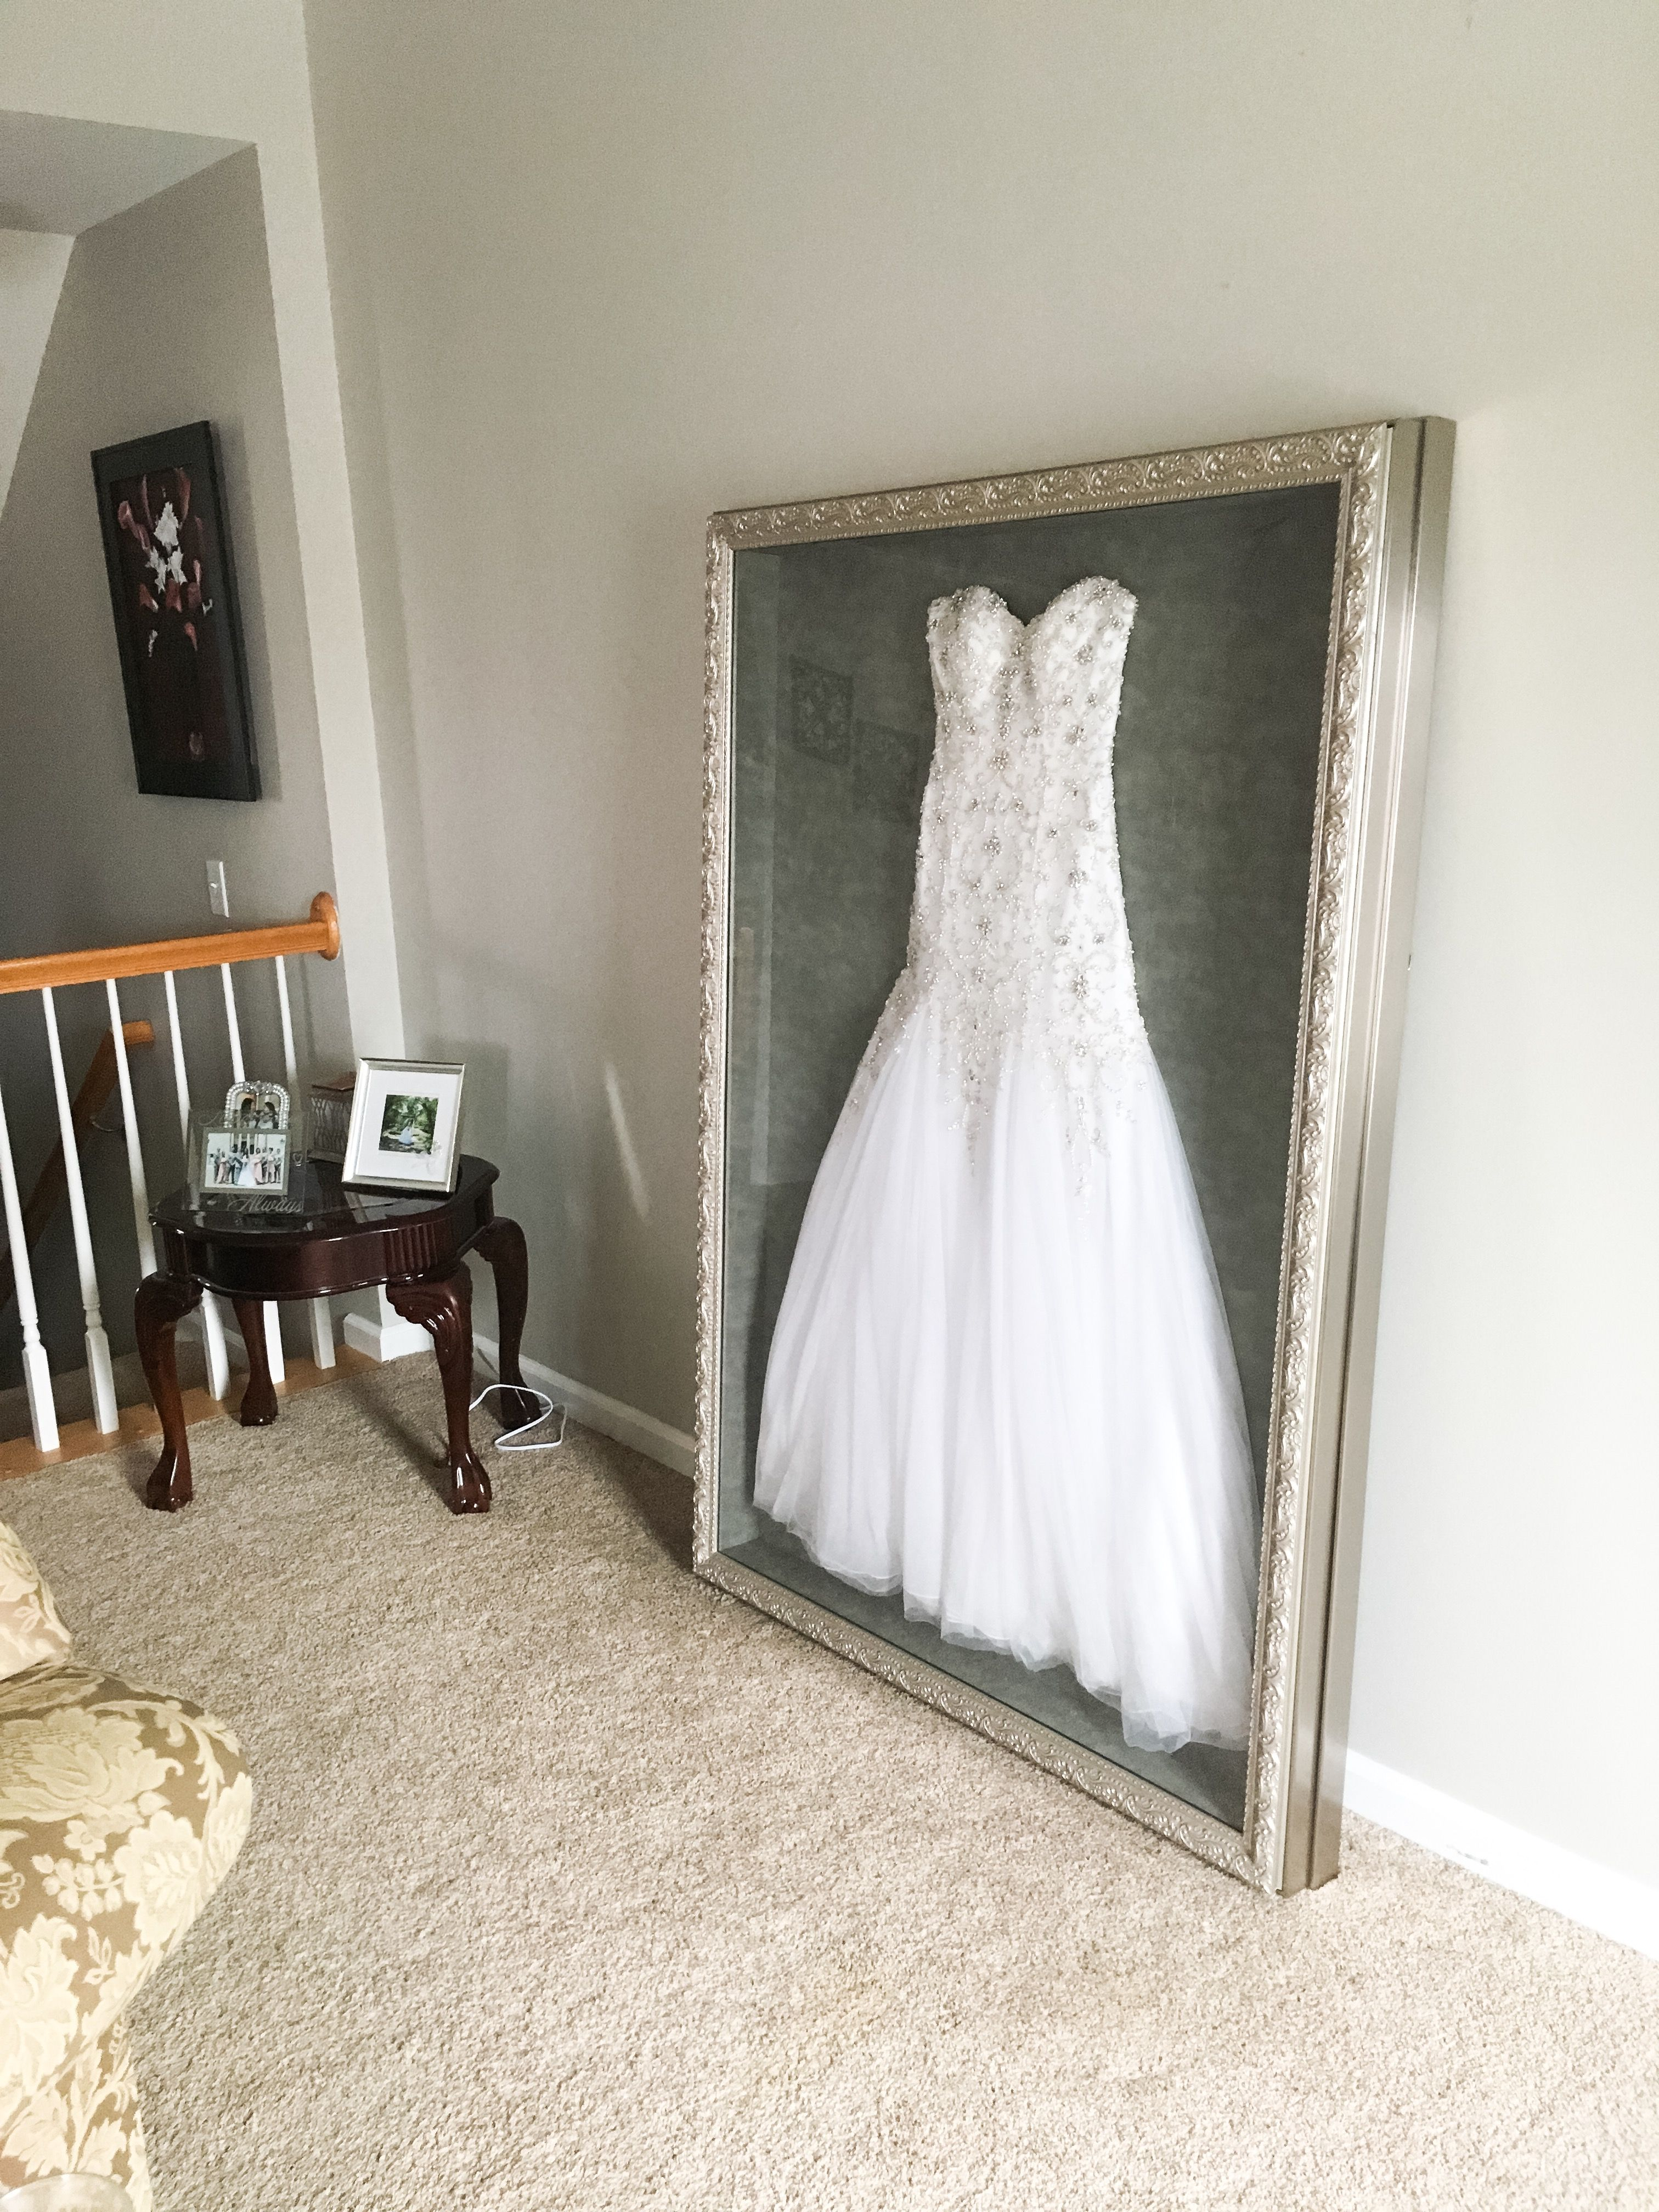 wedding dress storage Instead of putting my wedding dress in a box hidden in the attic or possibly selling